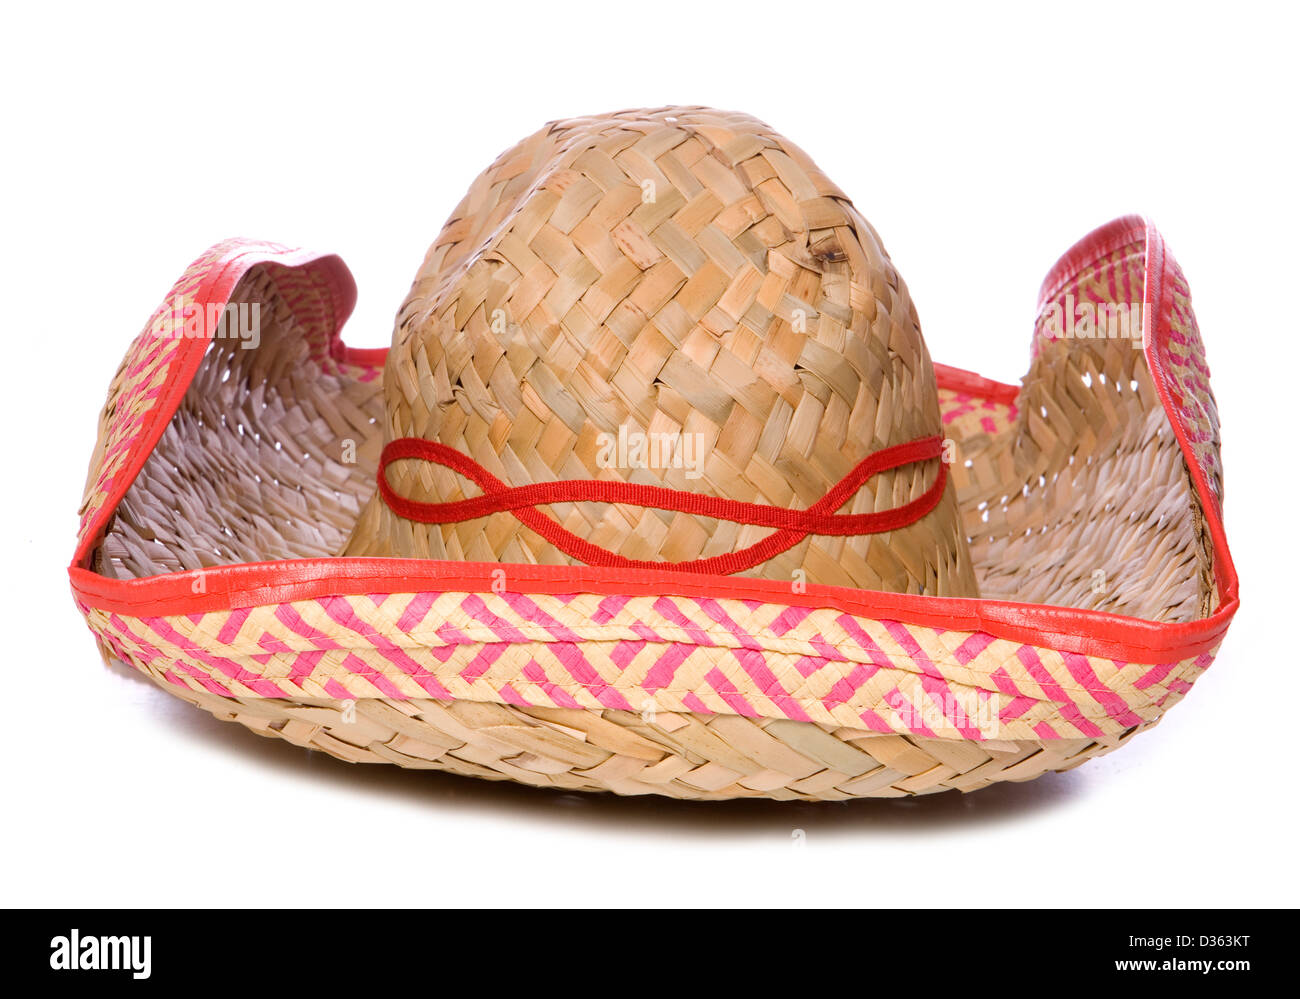 2f96e7b5fa6c5 Mexican Sombrero On White Background Imágenes De Stock   Mexican ...